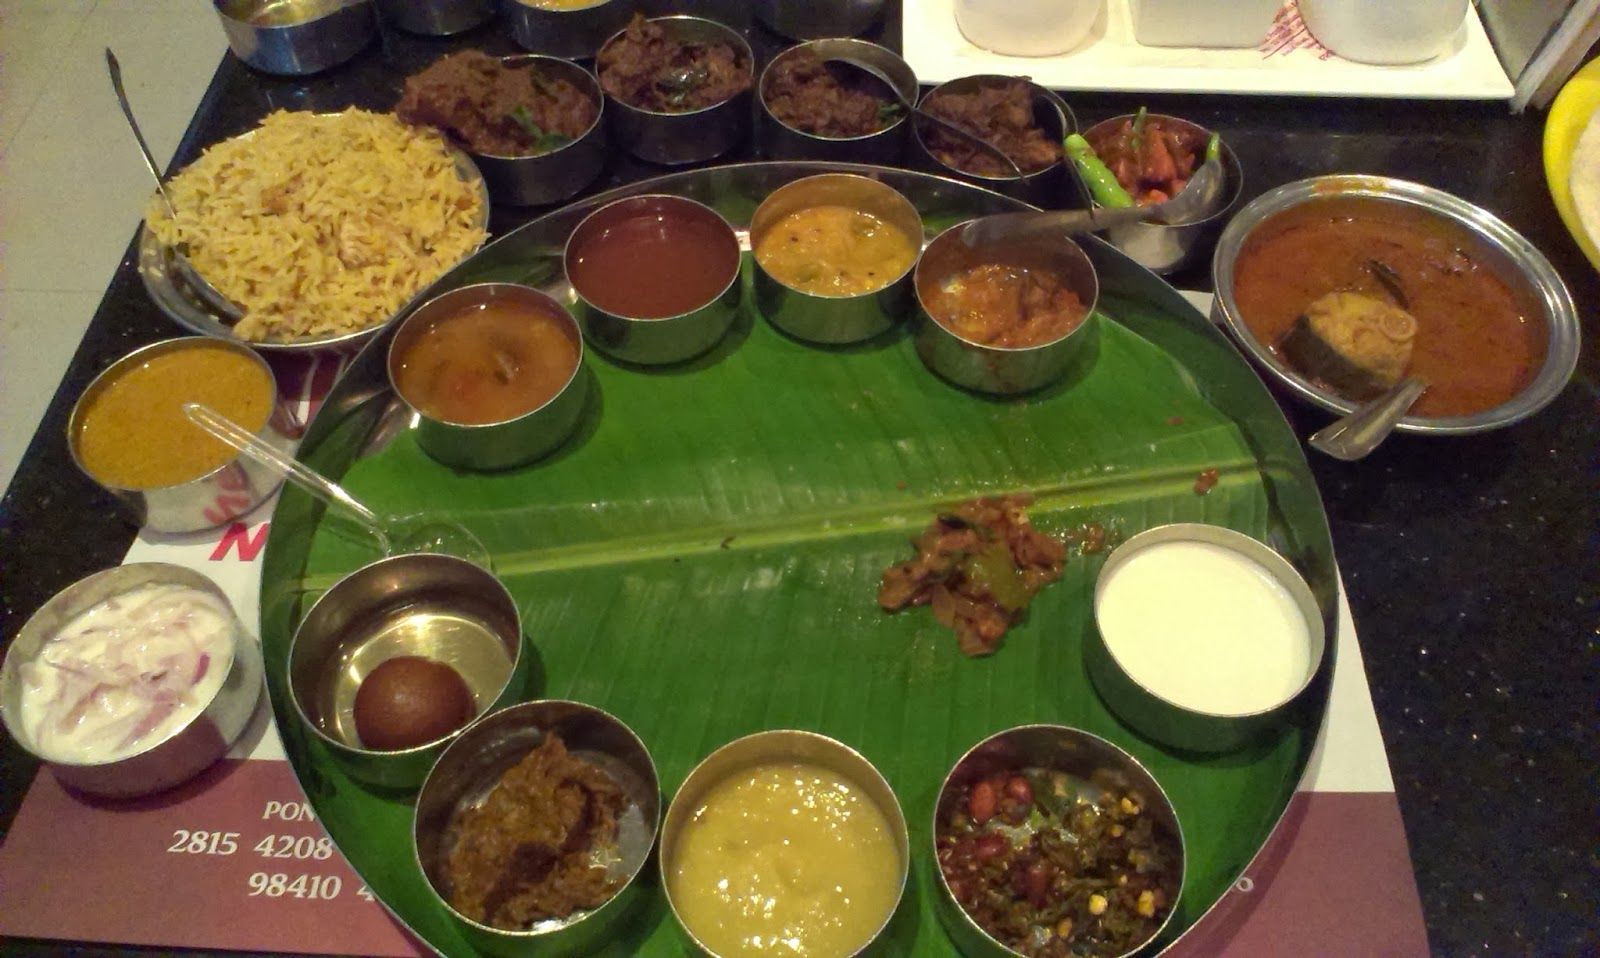 New andhra meals the foodie diaries for Andhra cuisine dishes